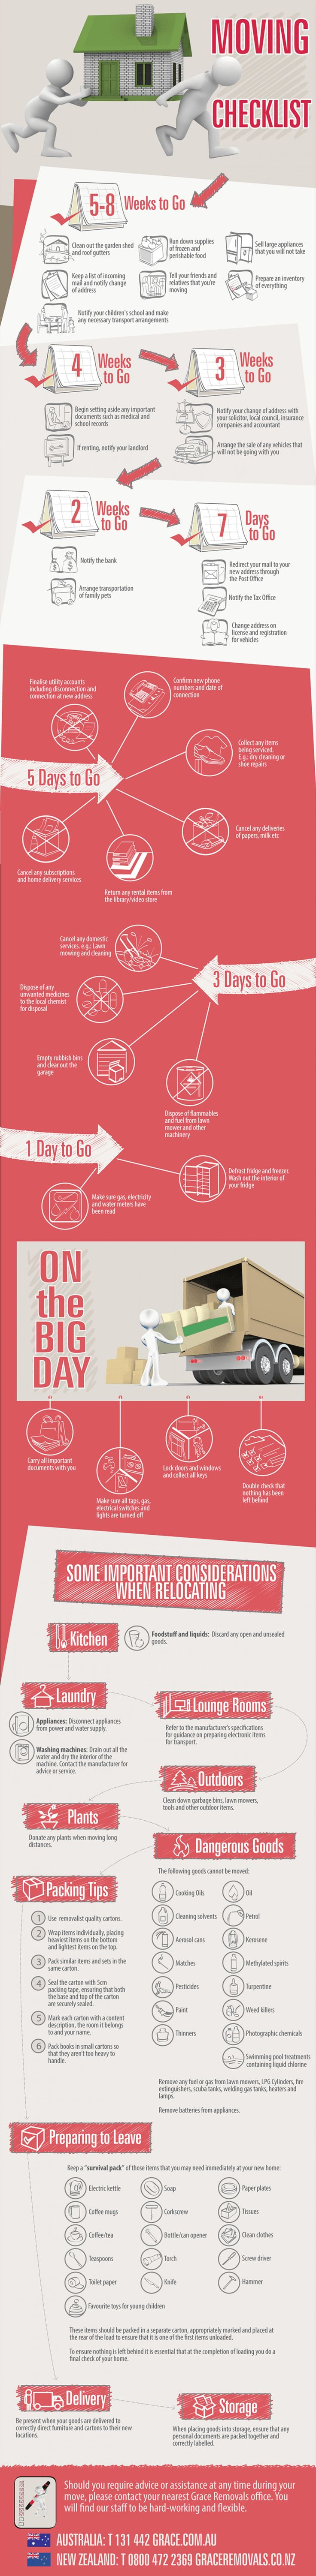 You'll be moving soon. Here is your moving check-list starting 8 weeks before THE big day!